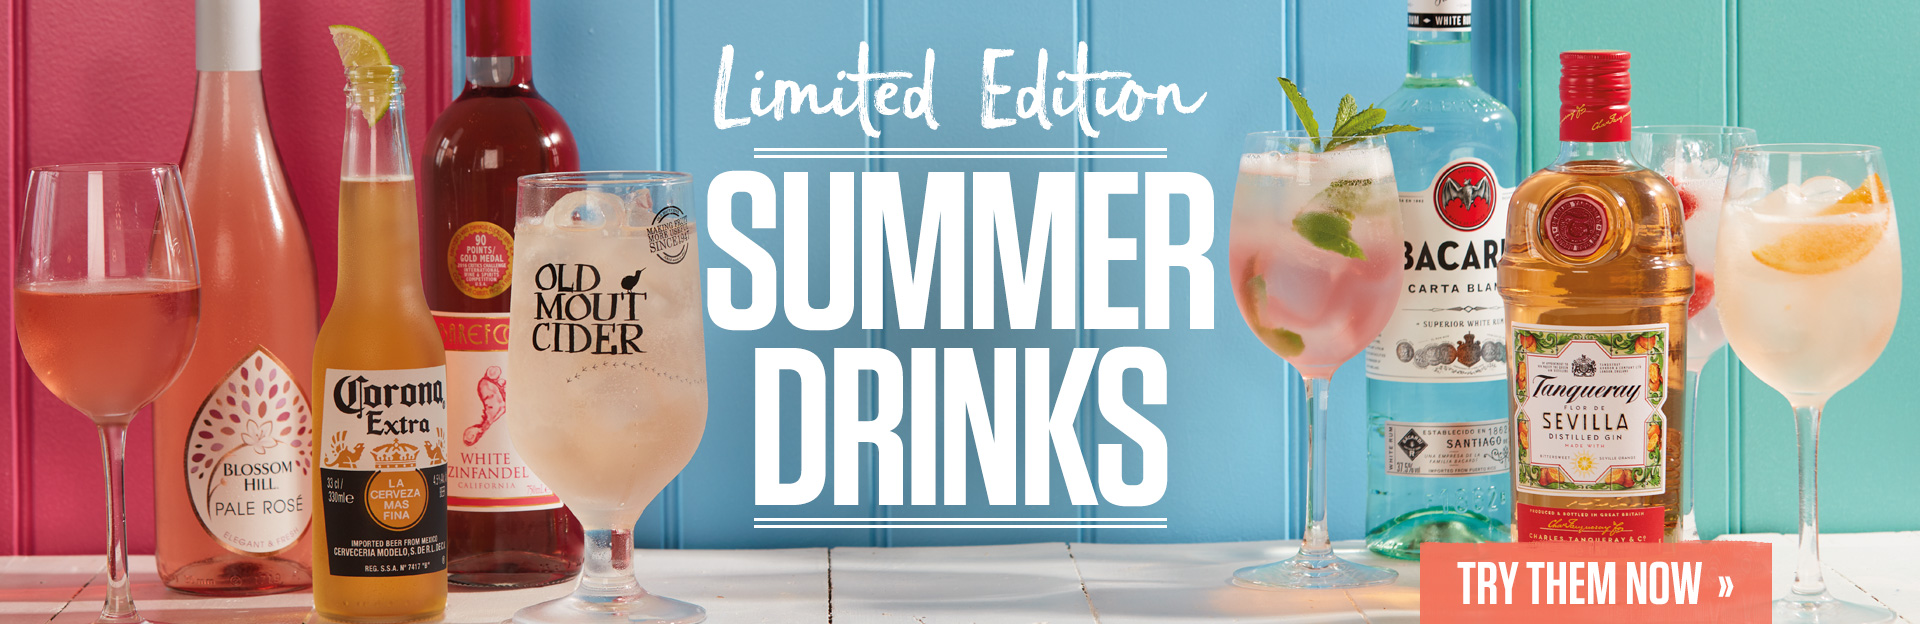 Summer Drinks at The Pilot